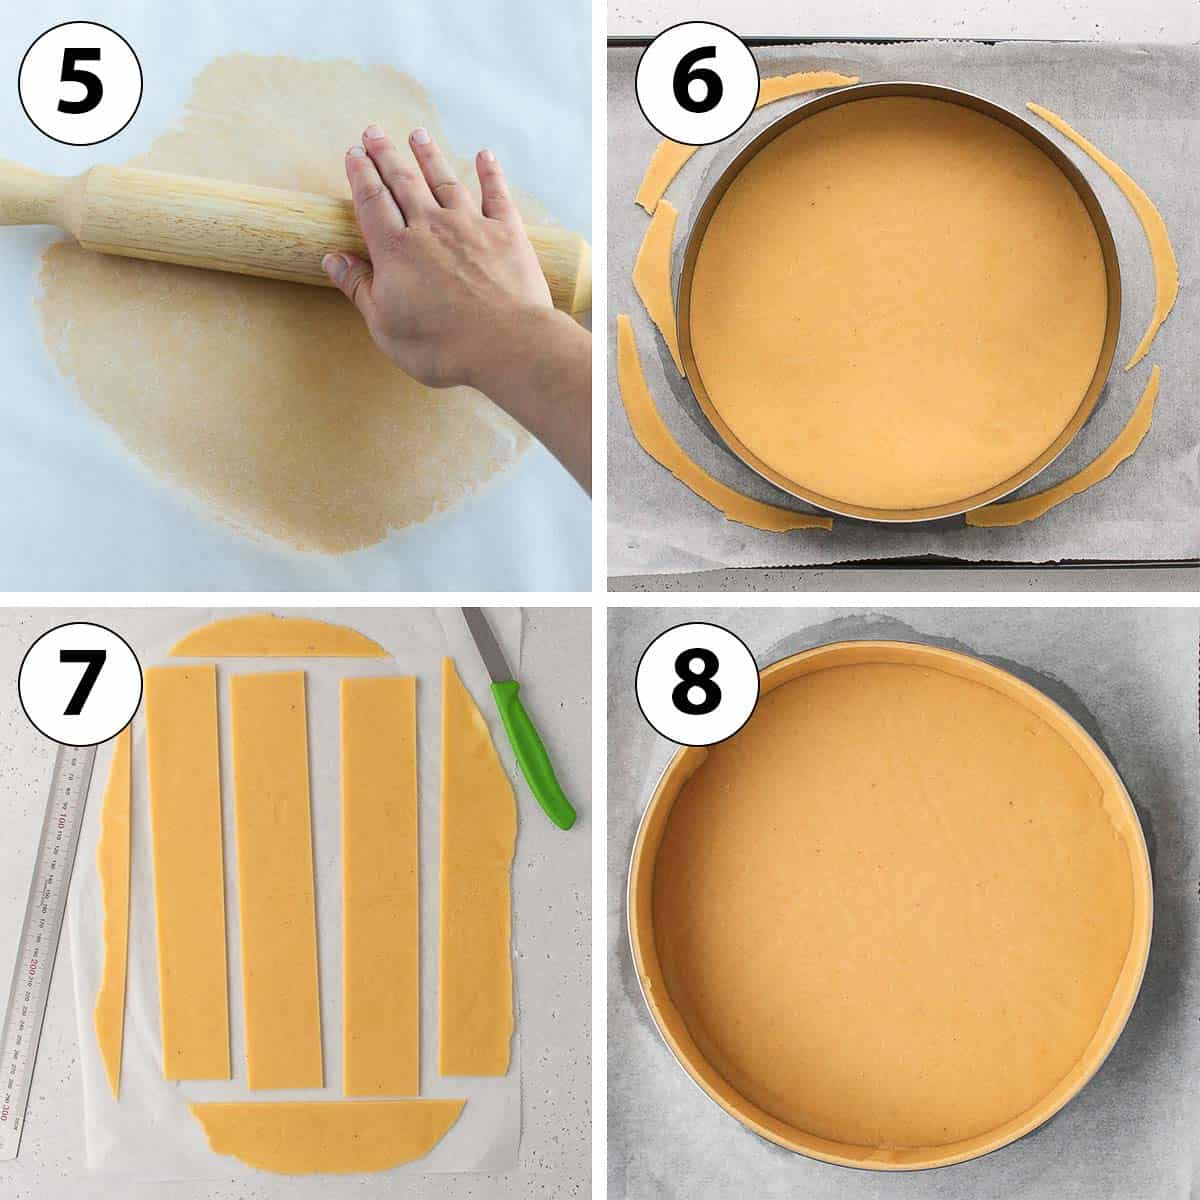 Process Shot Collage:lining the tart ring with the pastry.